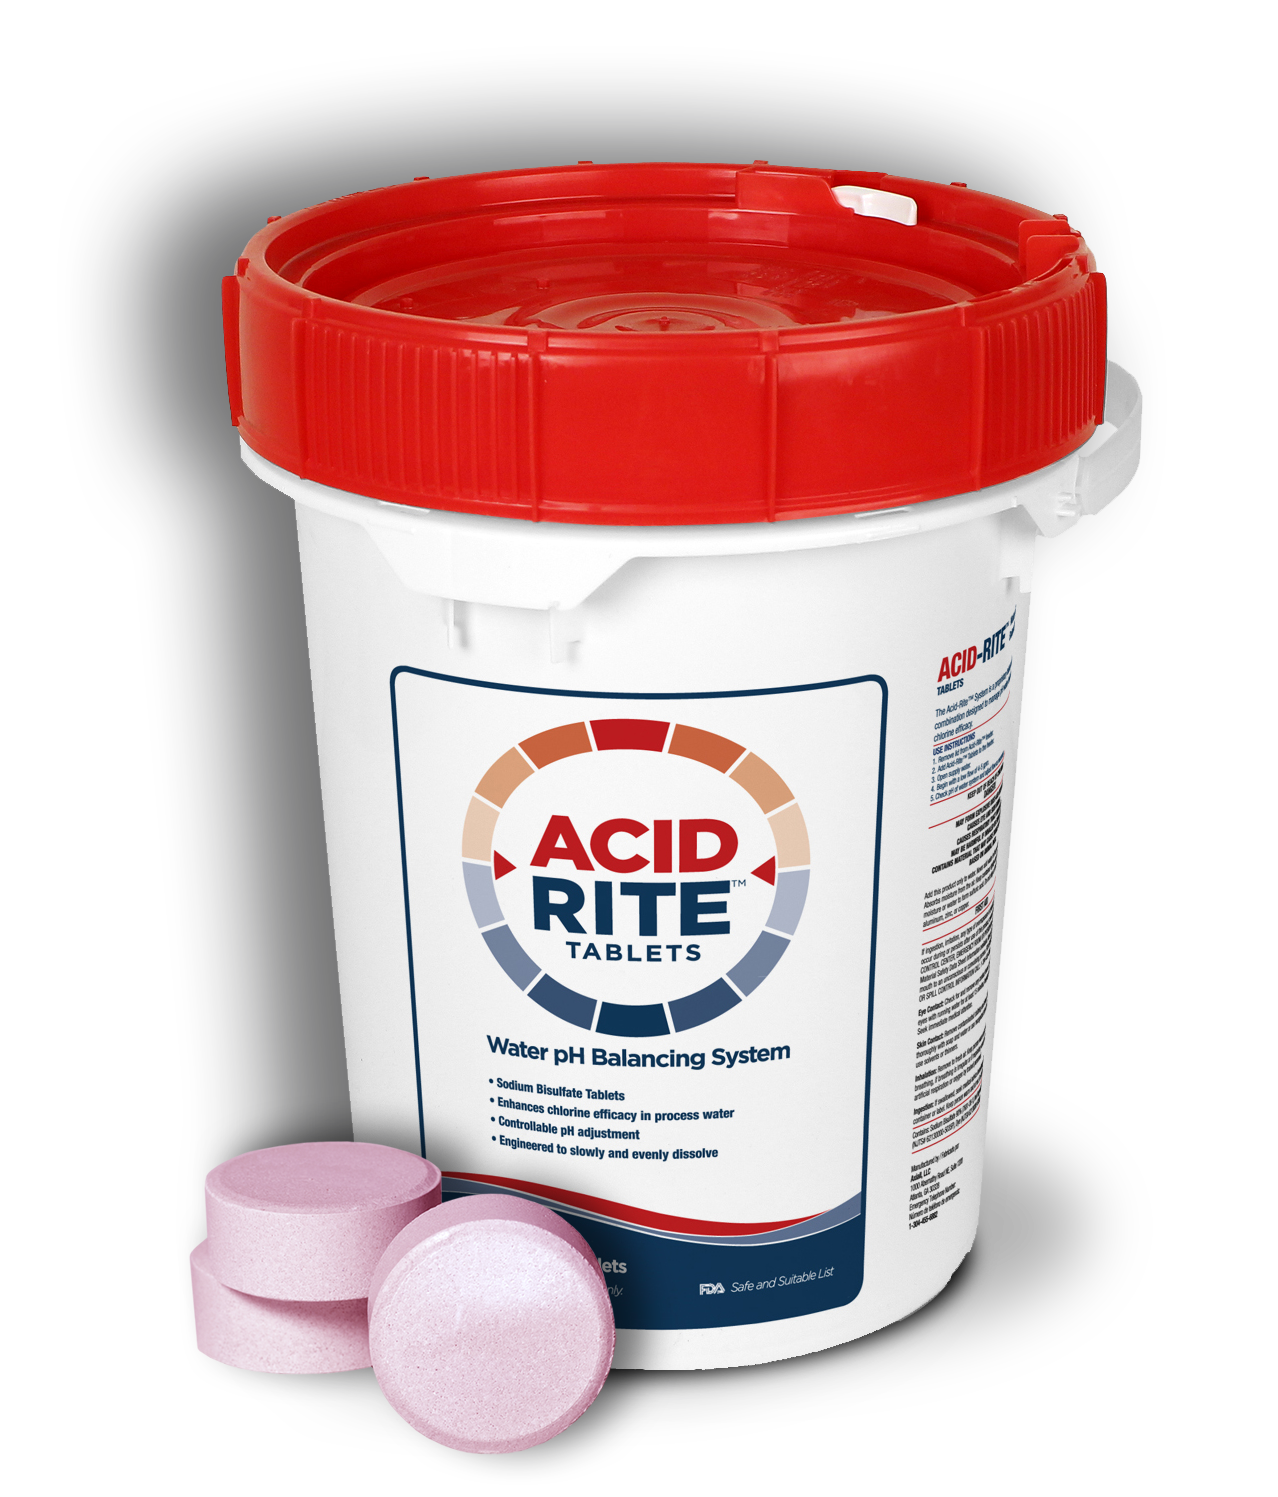 AcidRiteBucket photo 2.png